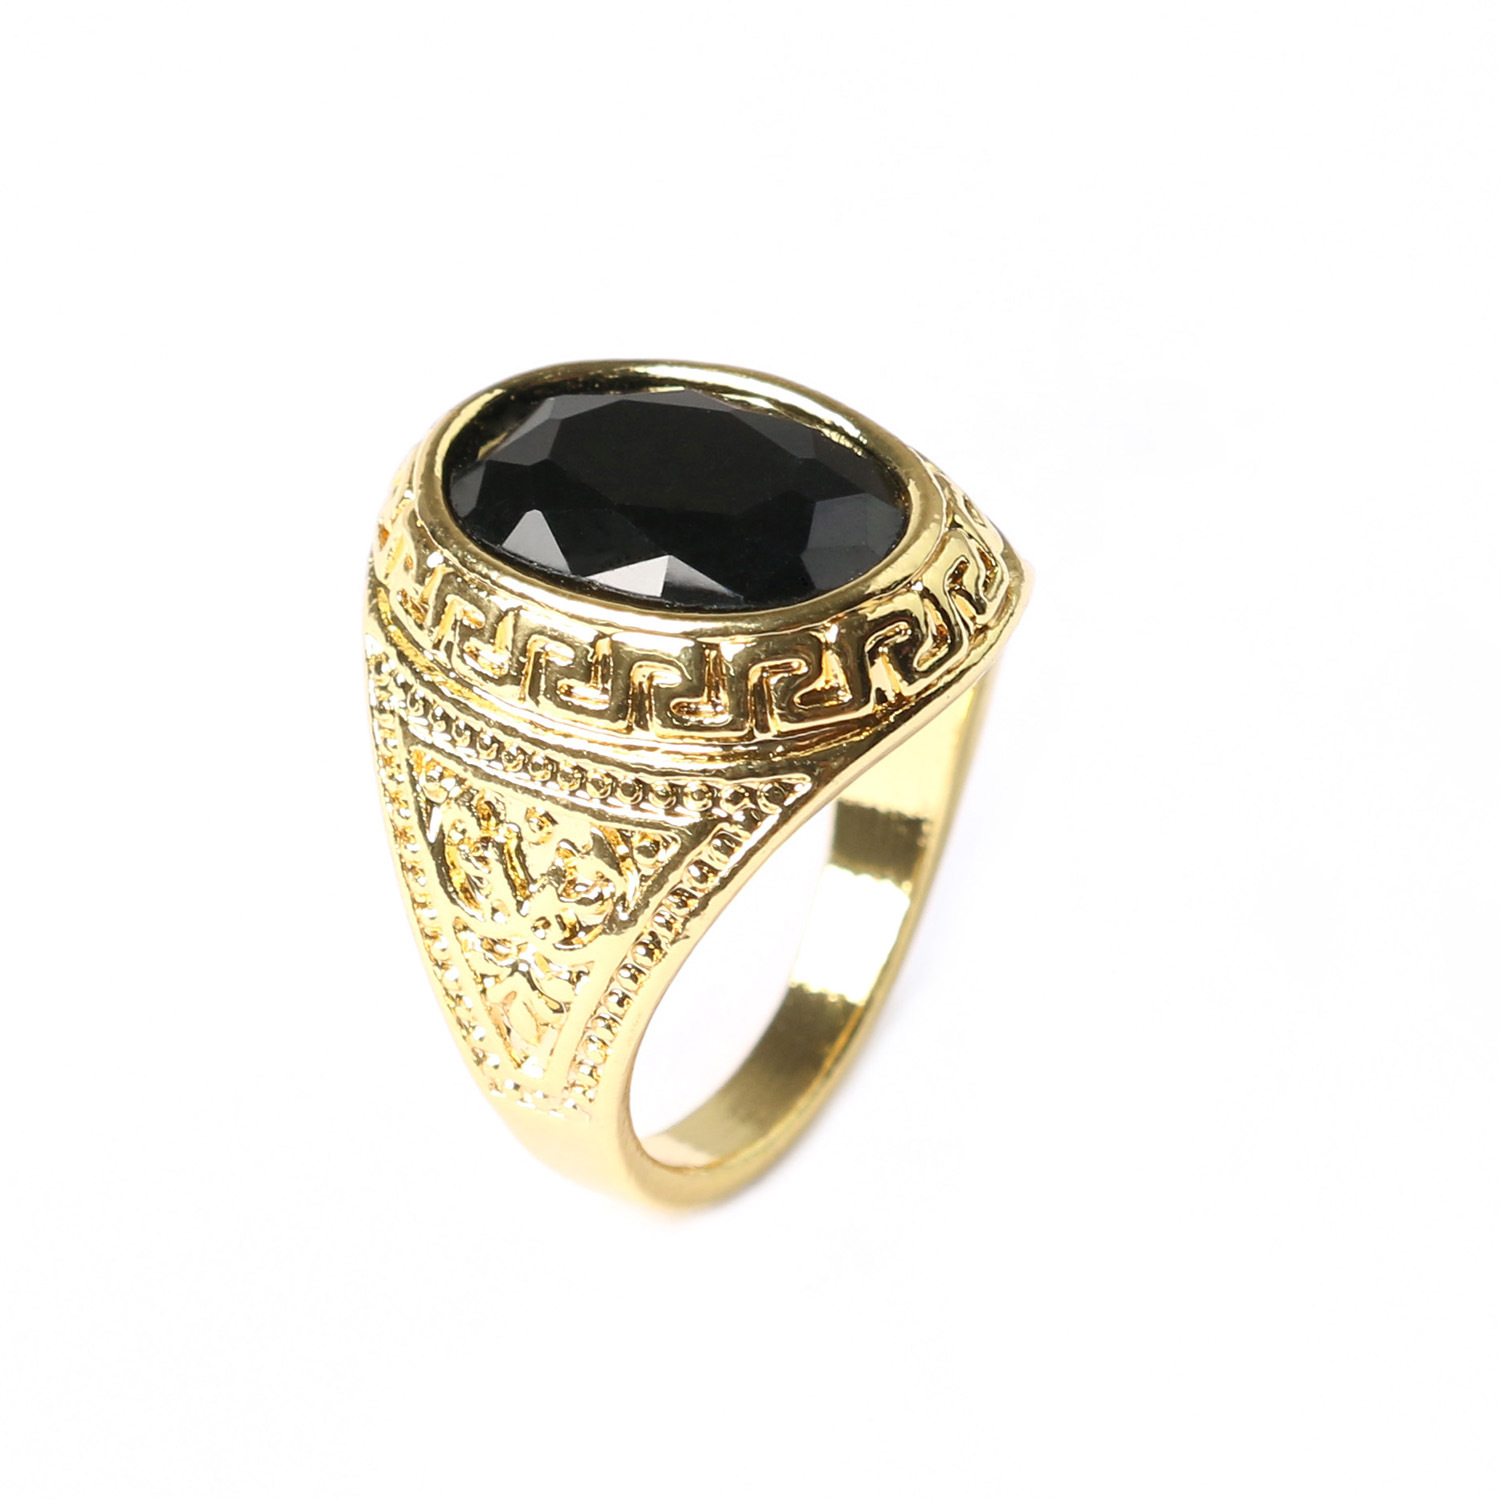 Big antique finger rings black gem ring for men gold Vintage style fashion rings